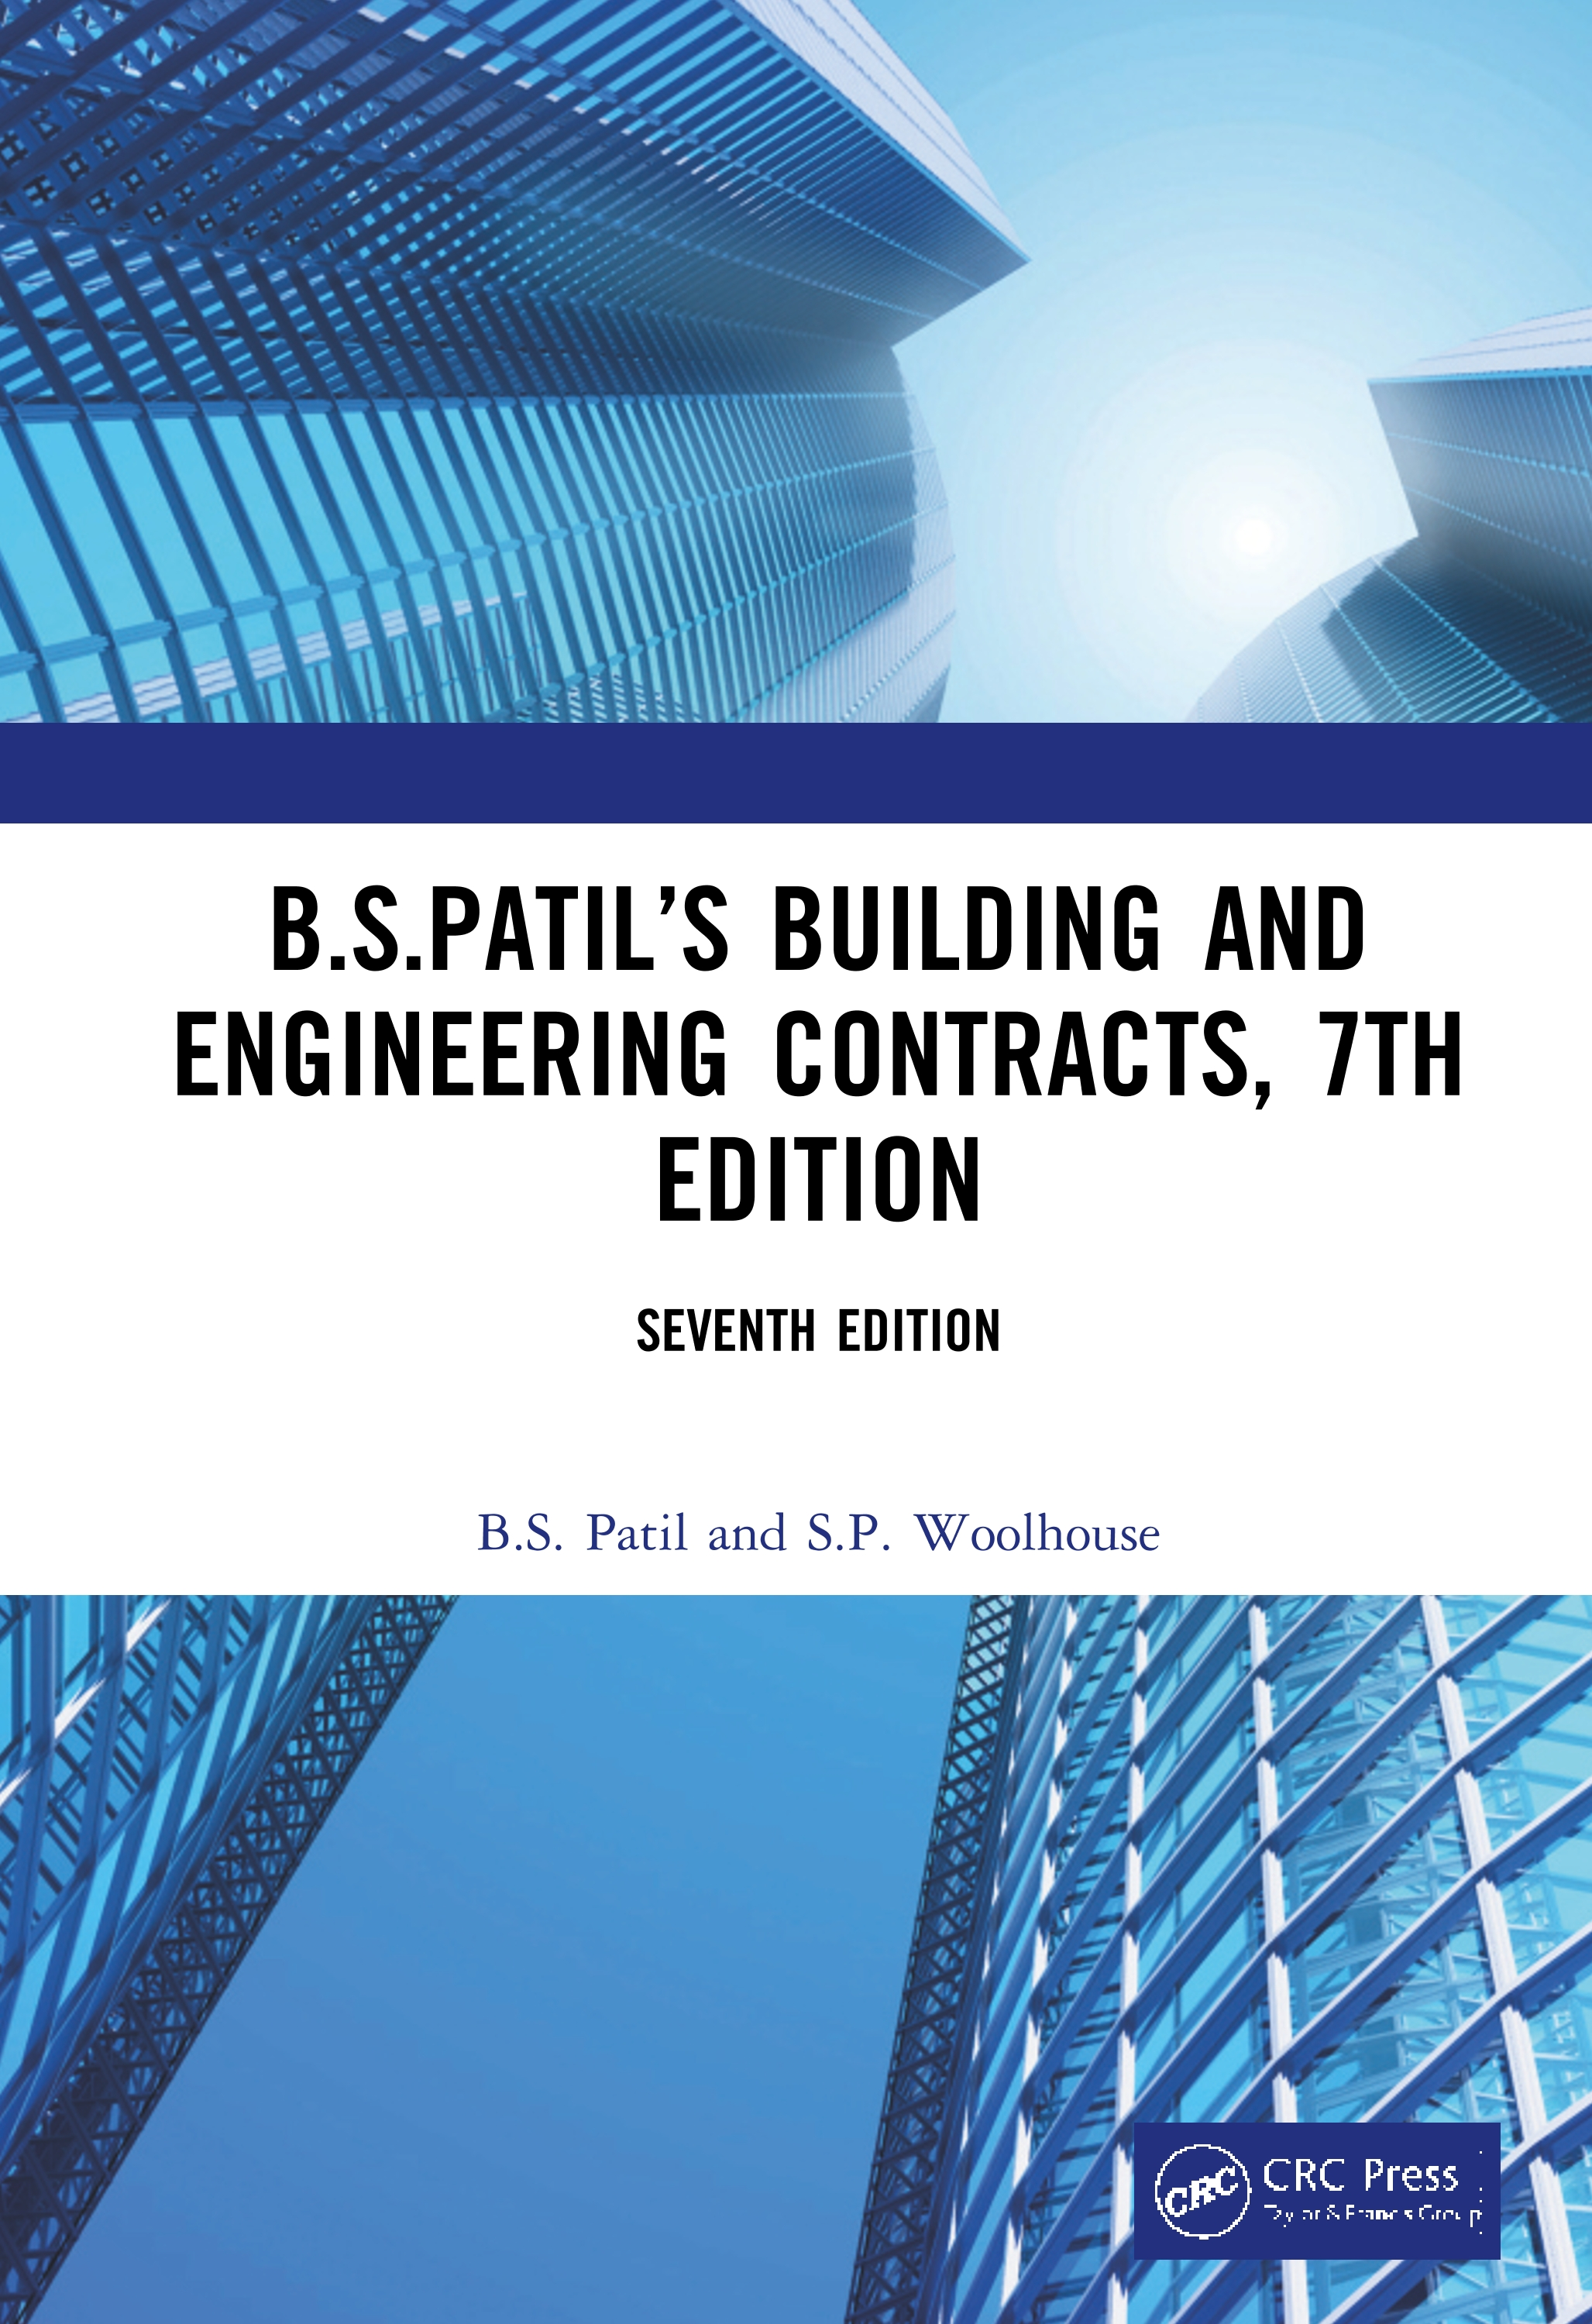 B.S.Patil's Building and Engineering Contracts, 7th Edition book cover